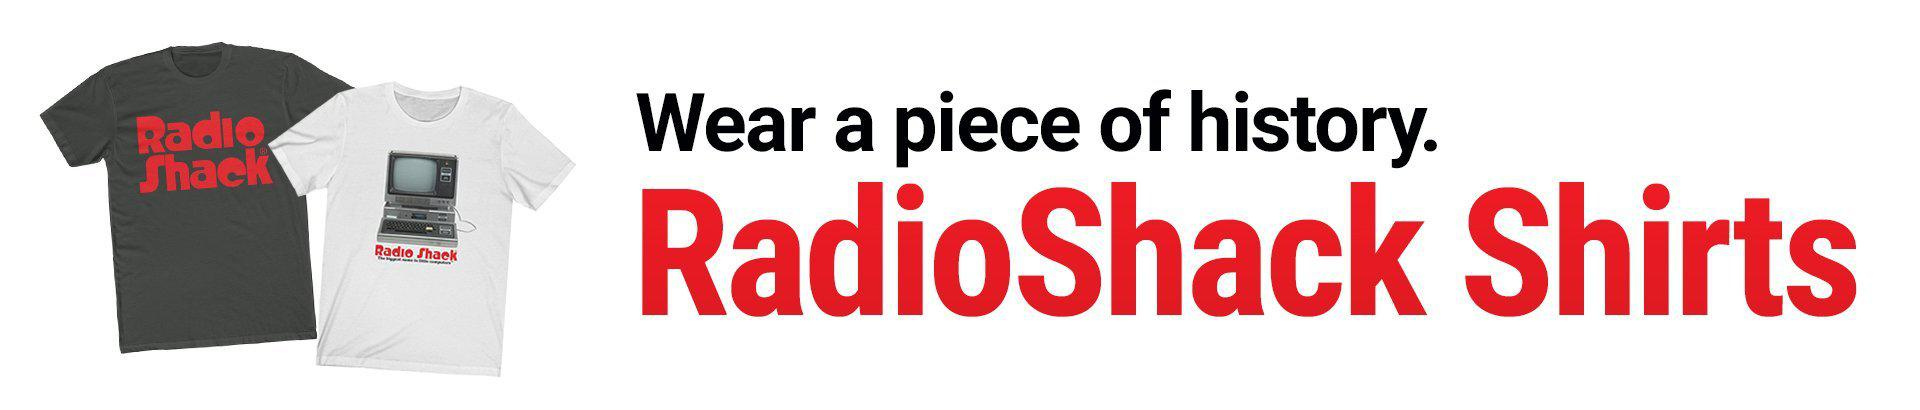 RadioShack Shirts.  Wear a piece of history.